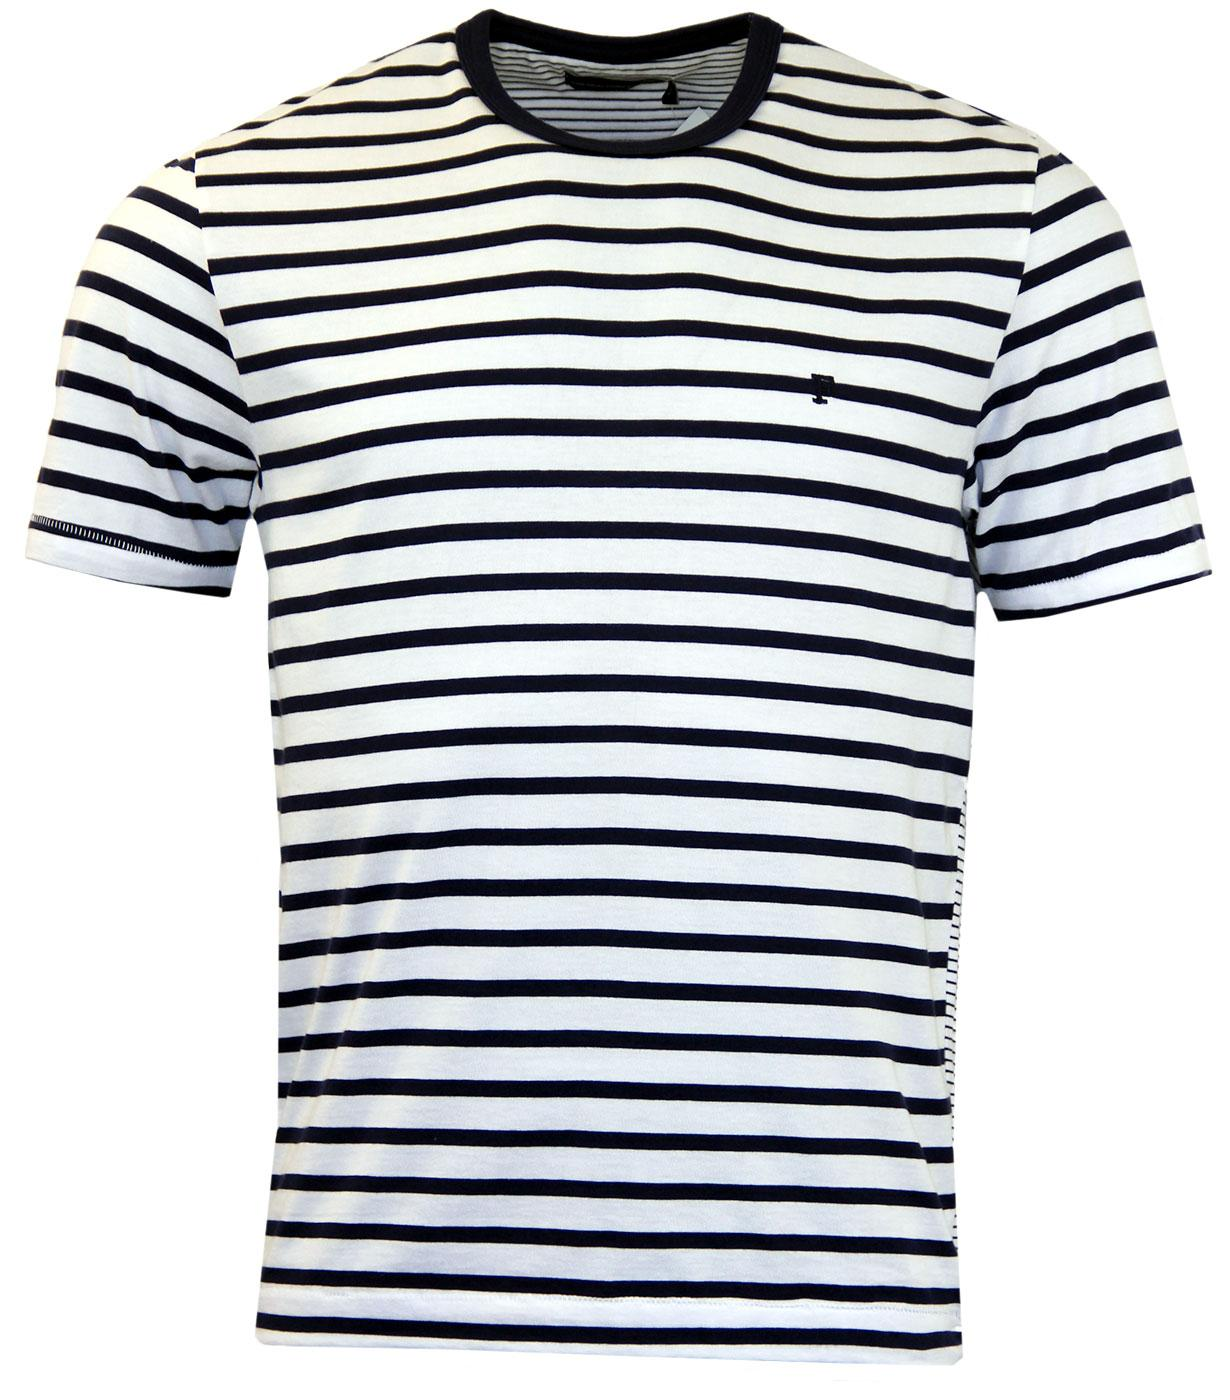 Langlois FRENCH CONNECTION Retro Mod Stripe Tee